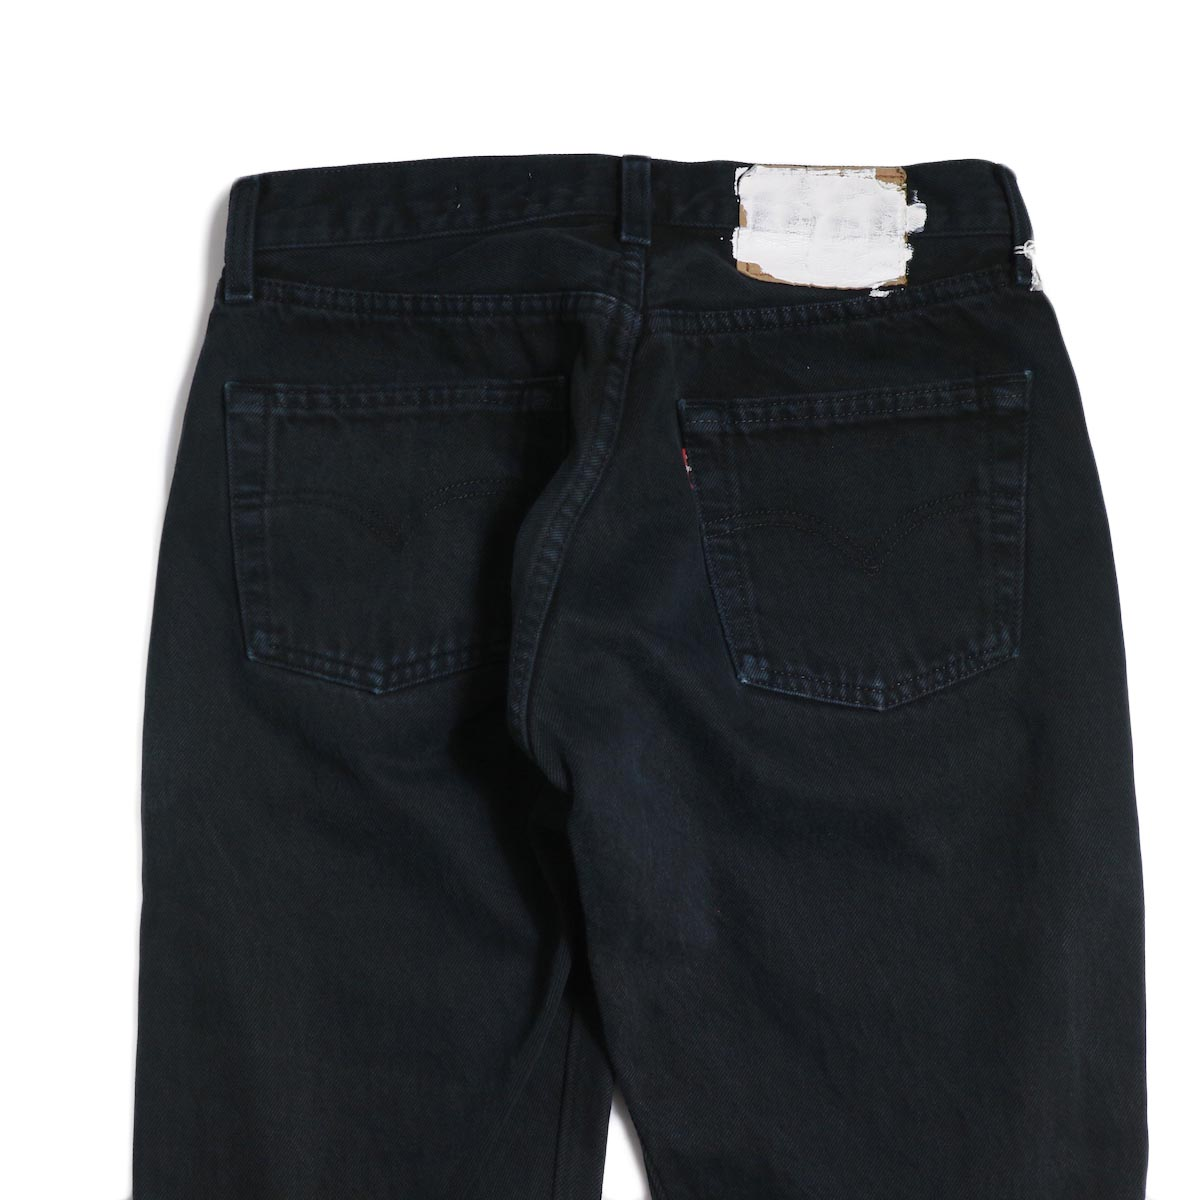 OLD PARK / Back Flare Jeans -Black Ssize (F) バックポケット